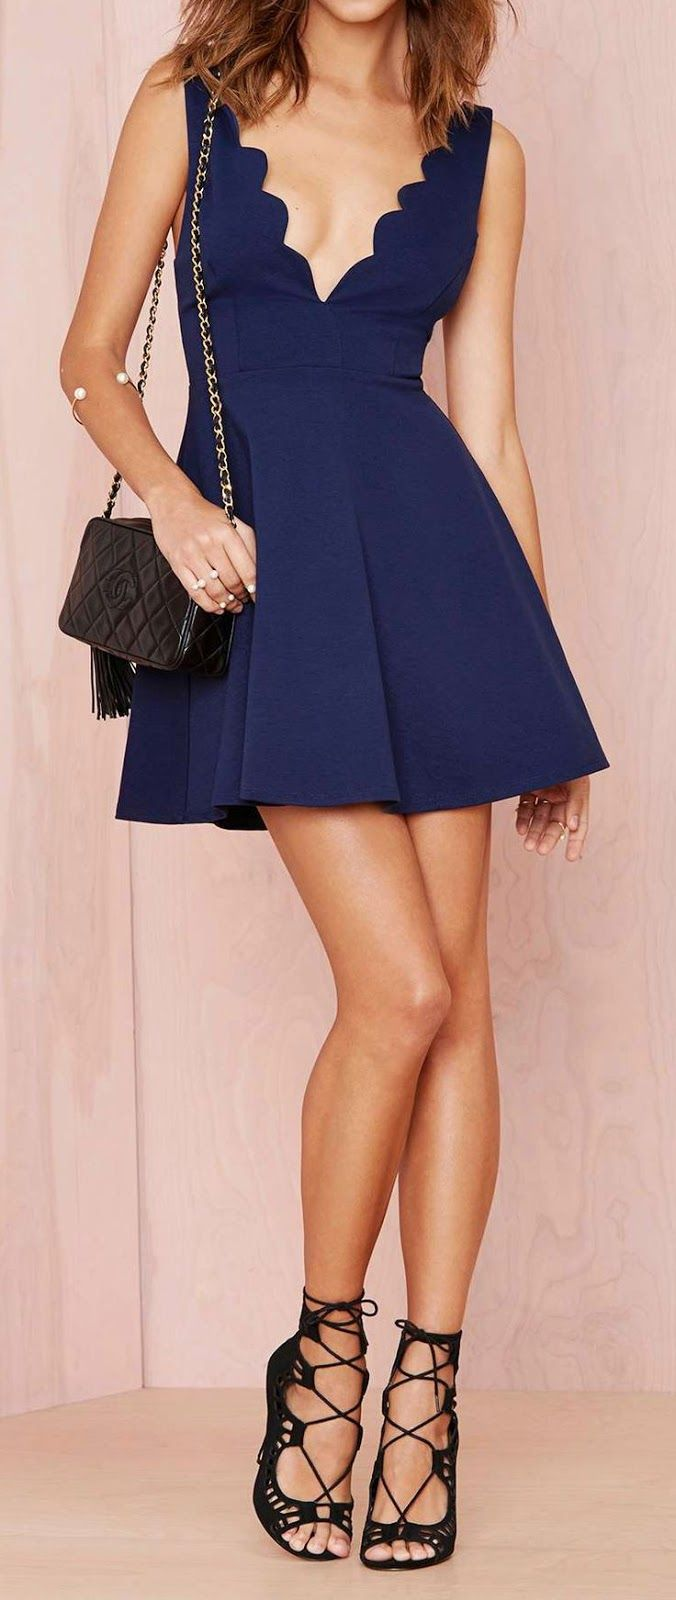 Scalloped plunge dress